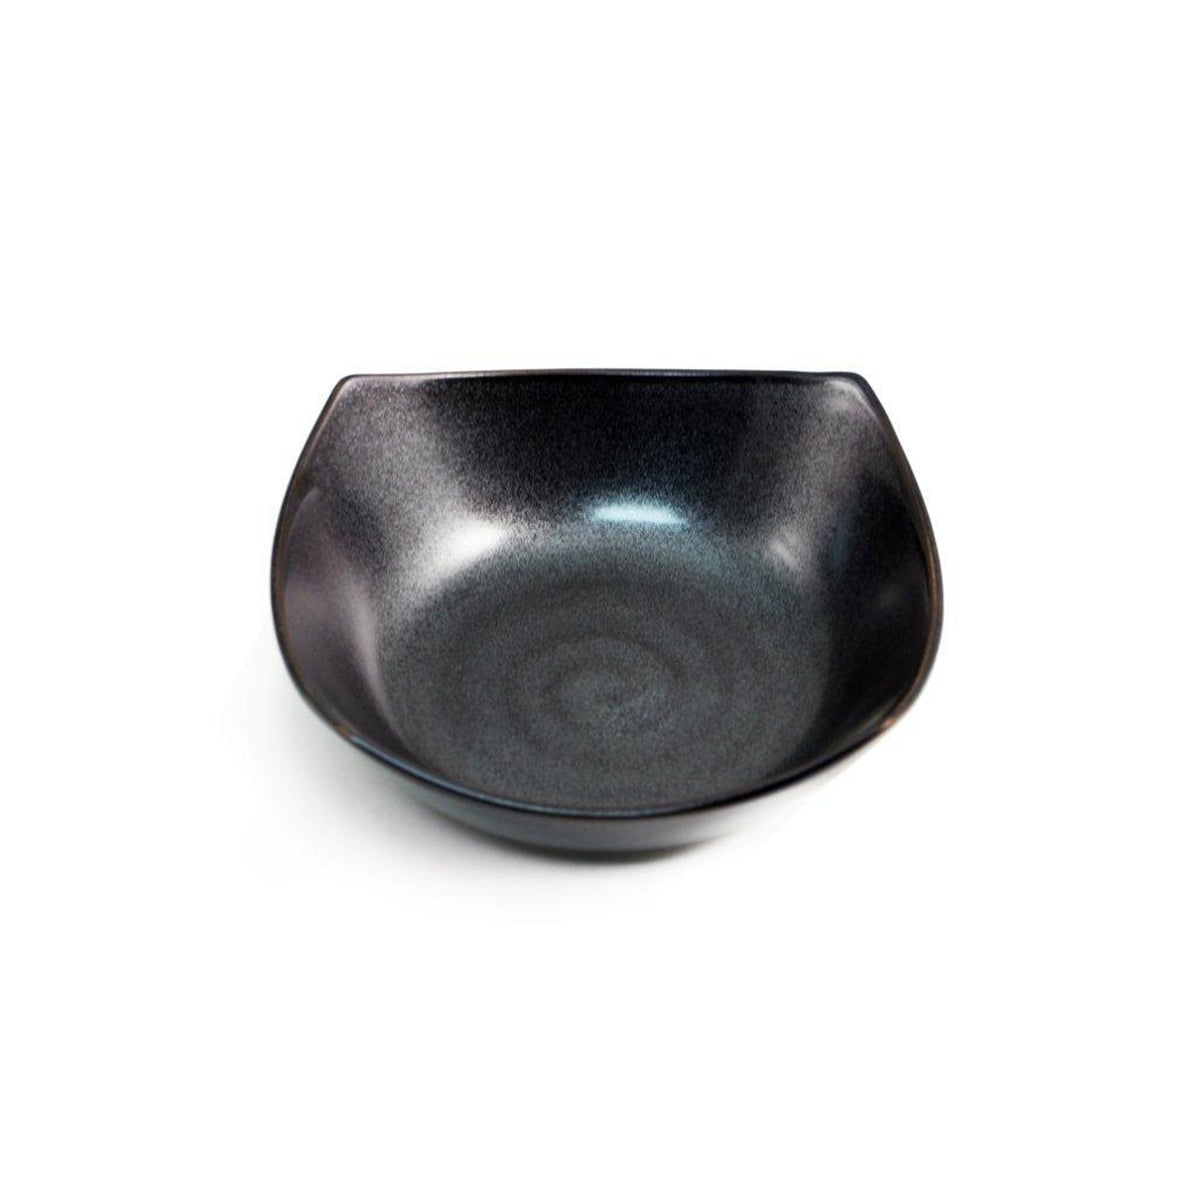 "Pearl Black Bowl 12 fl oz / 5.91"" x 5.91"""